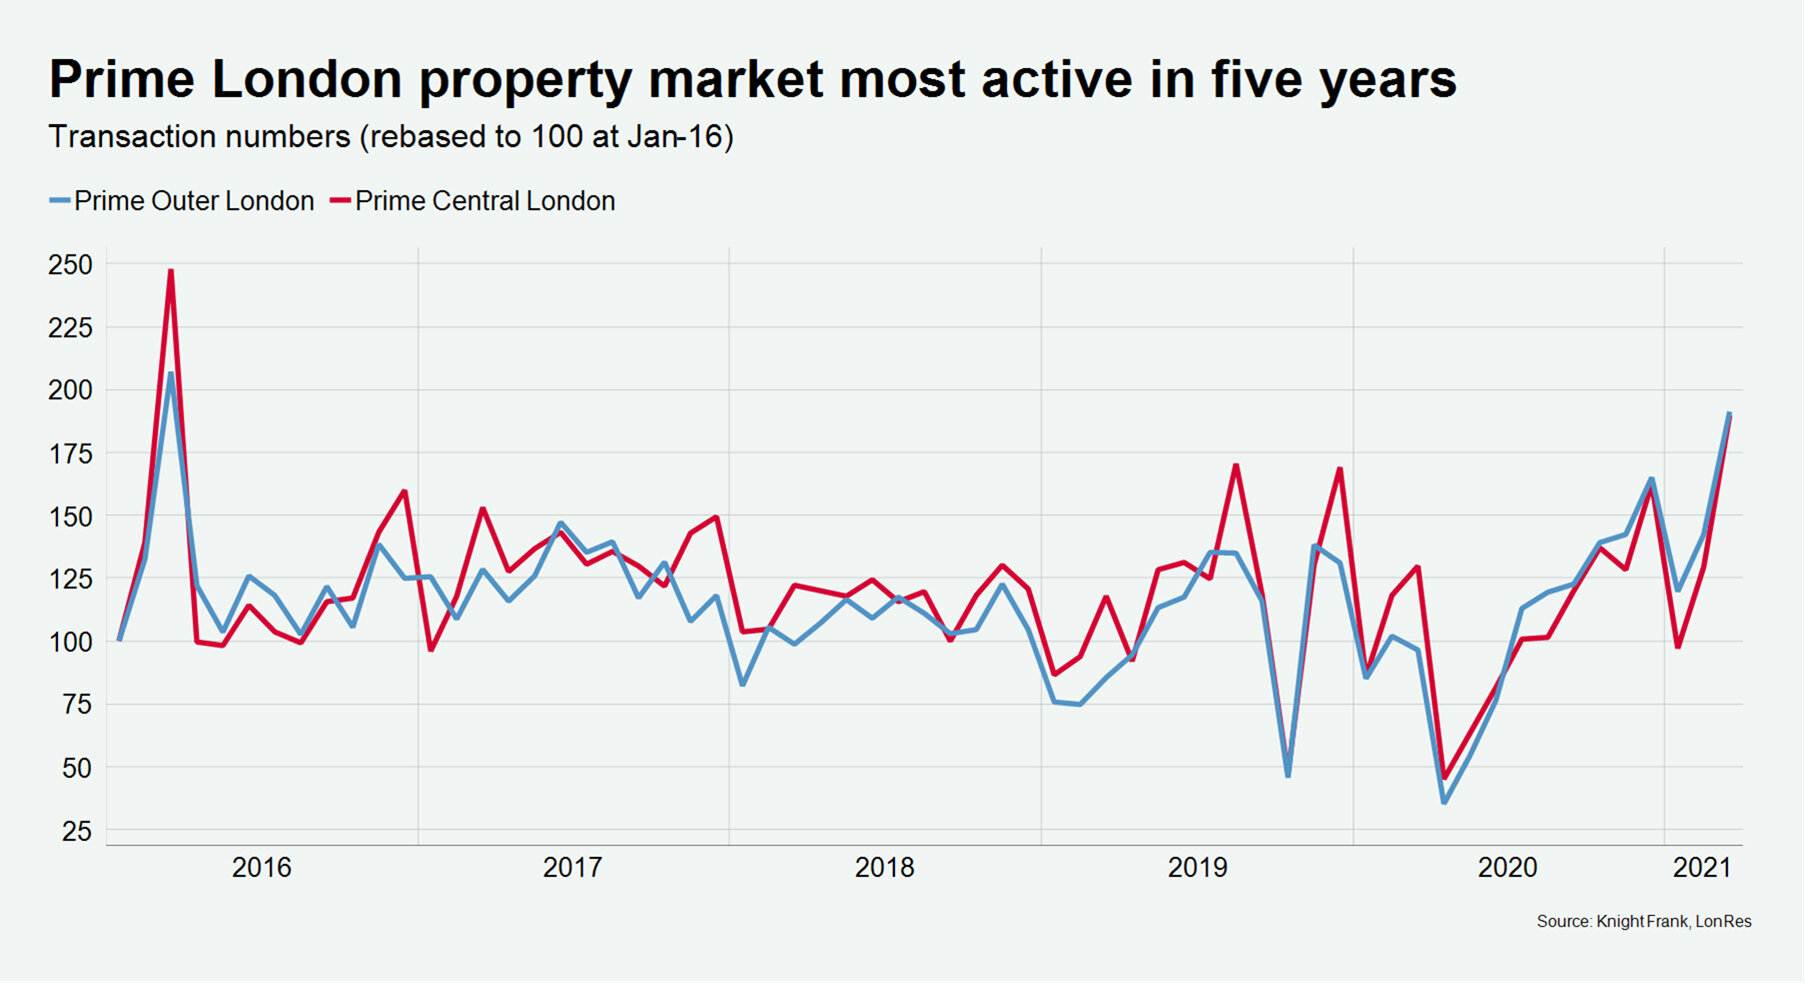 Prime-London-property-market-most-active-in-five-years.jpg